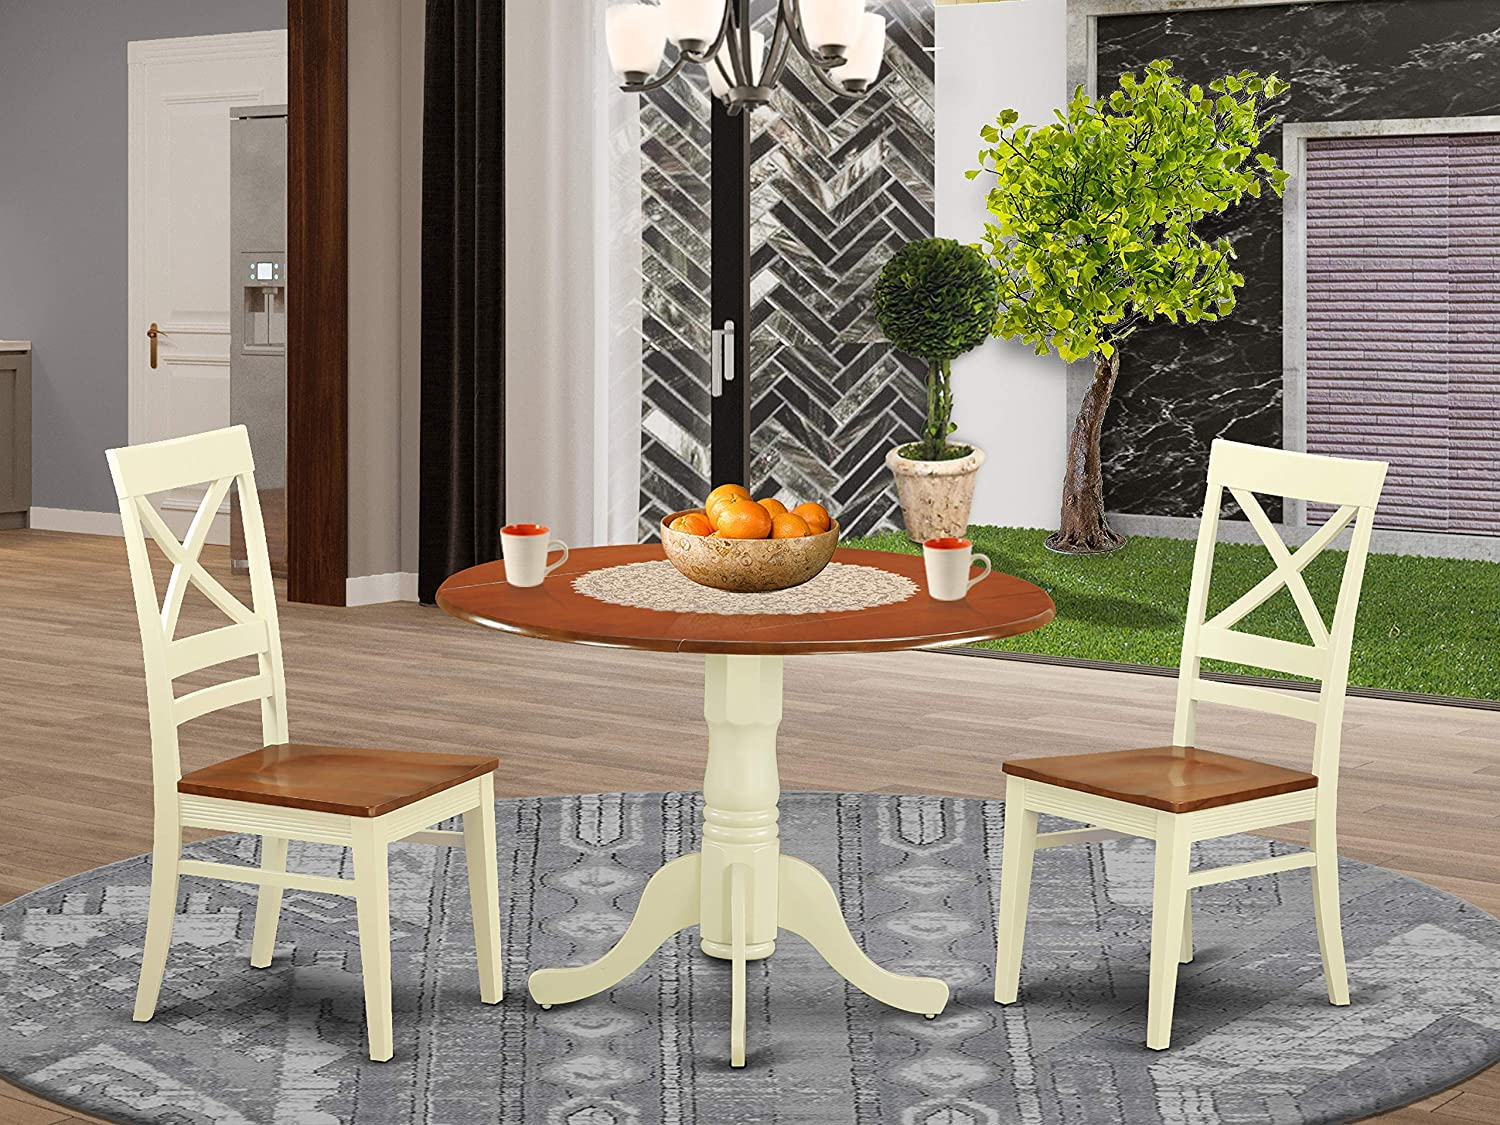 3 Pc Dining room set for 2 In stock and Table Chairs 2-Dinette dinette Ranking TOP2